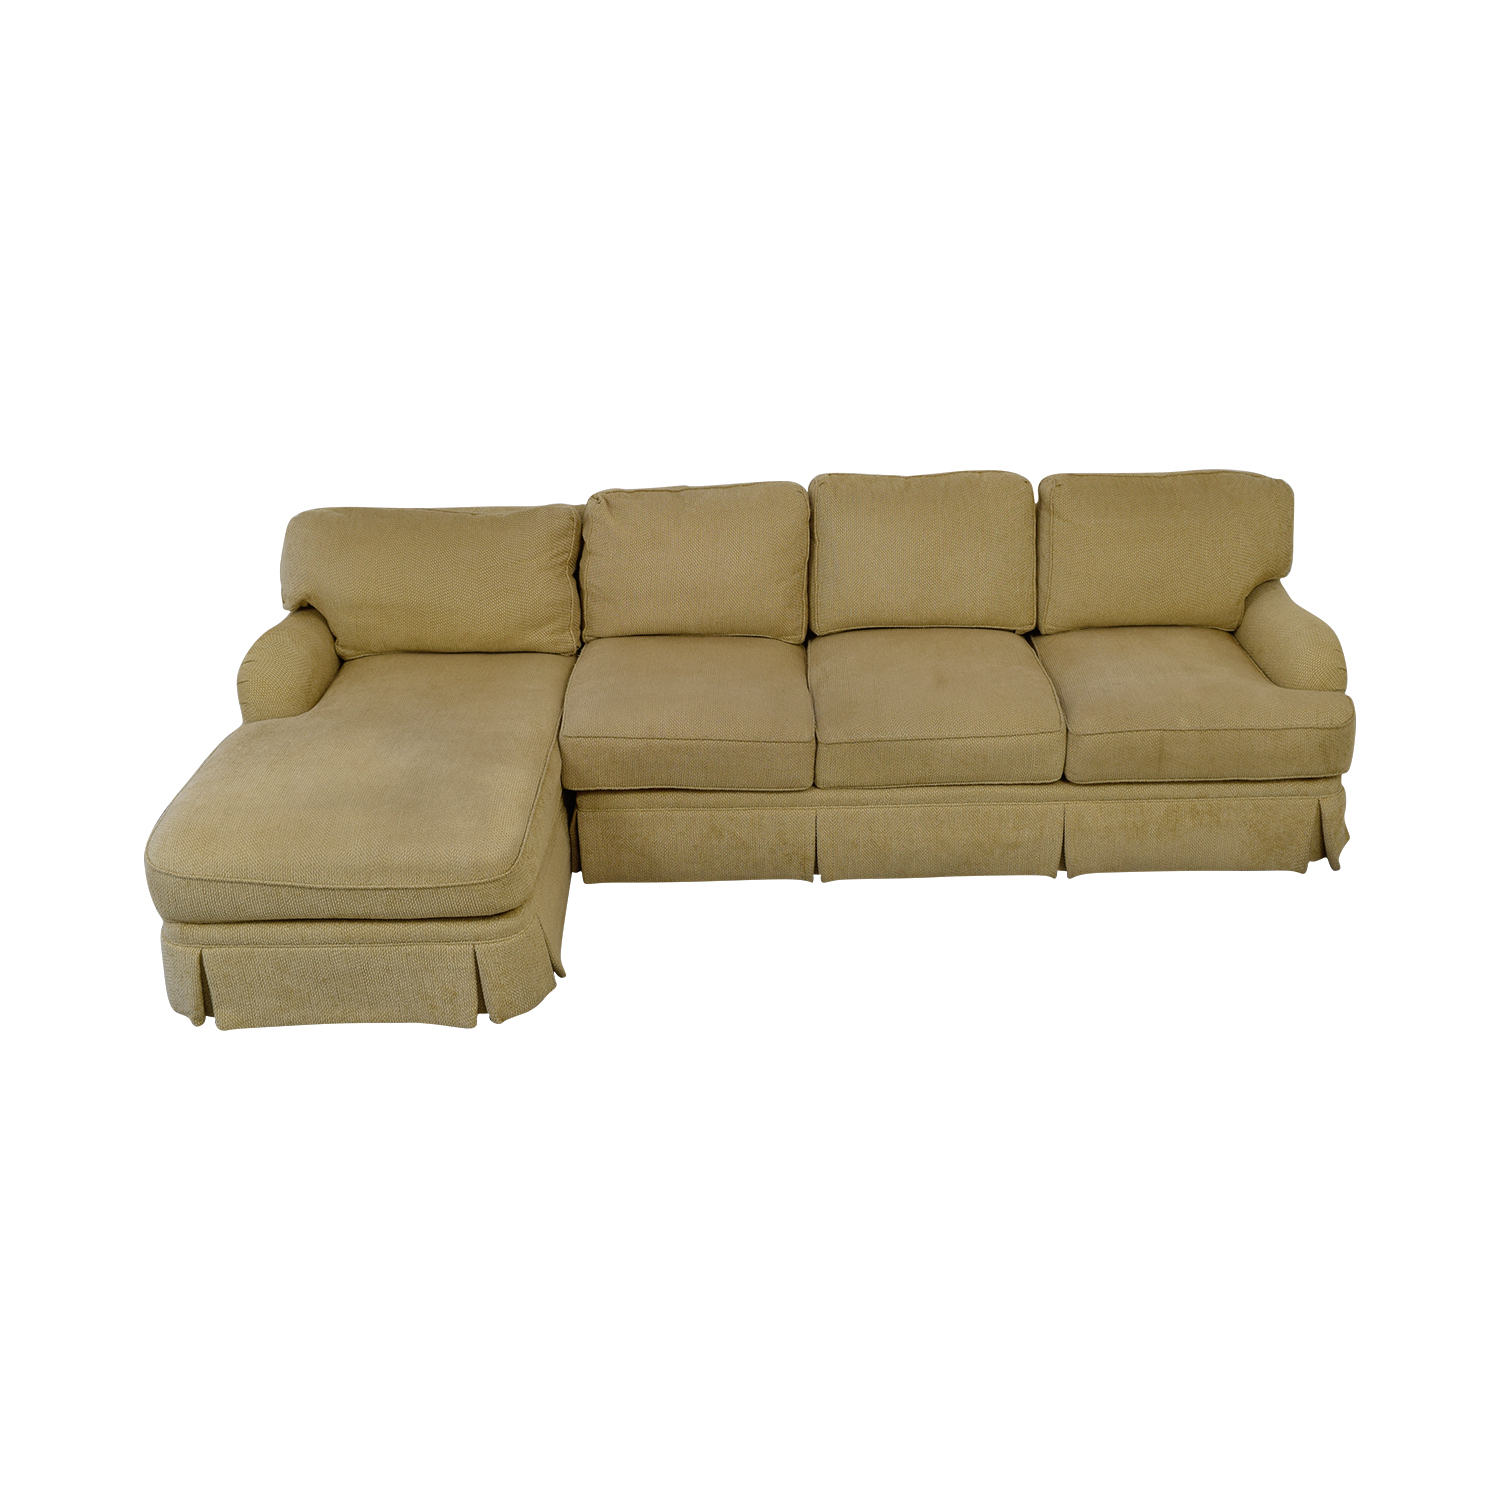 C R Laine C R Laine Beige Skirted Chaise Sectional nyc